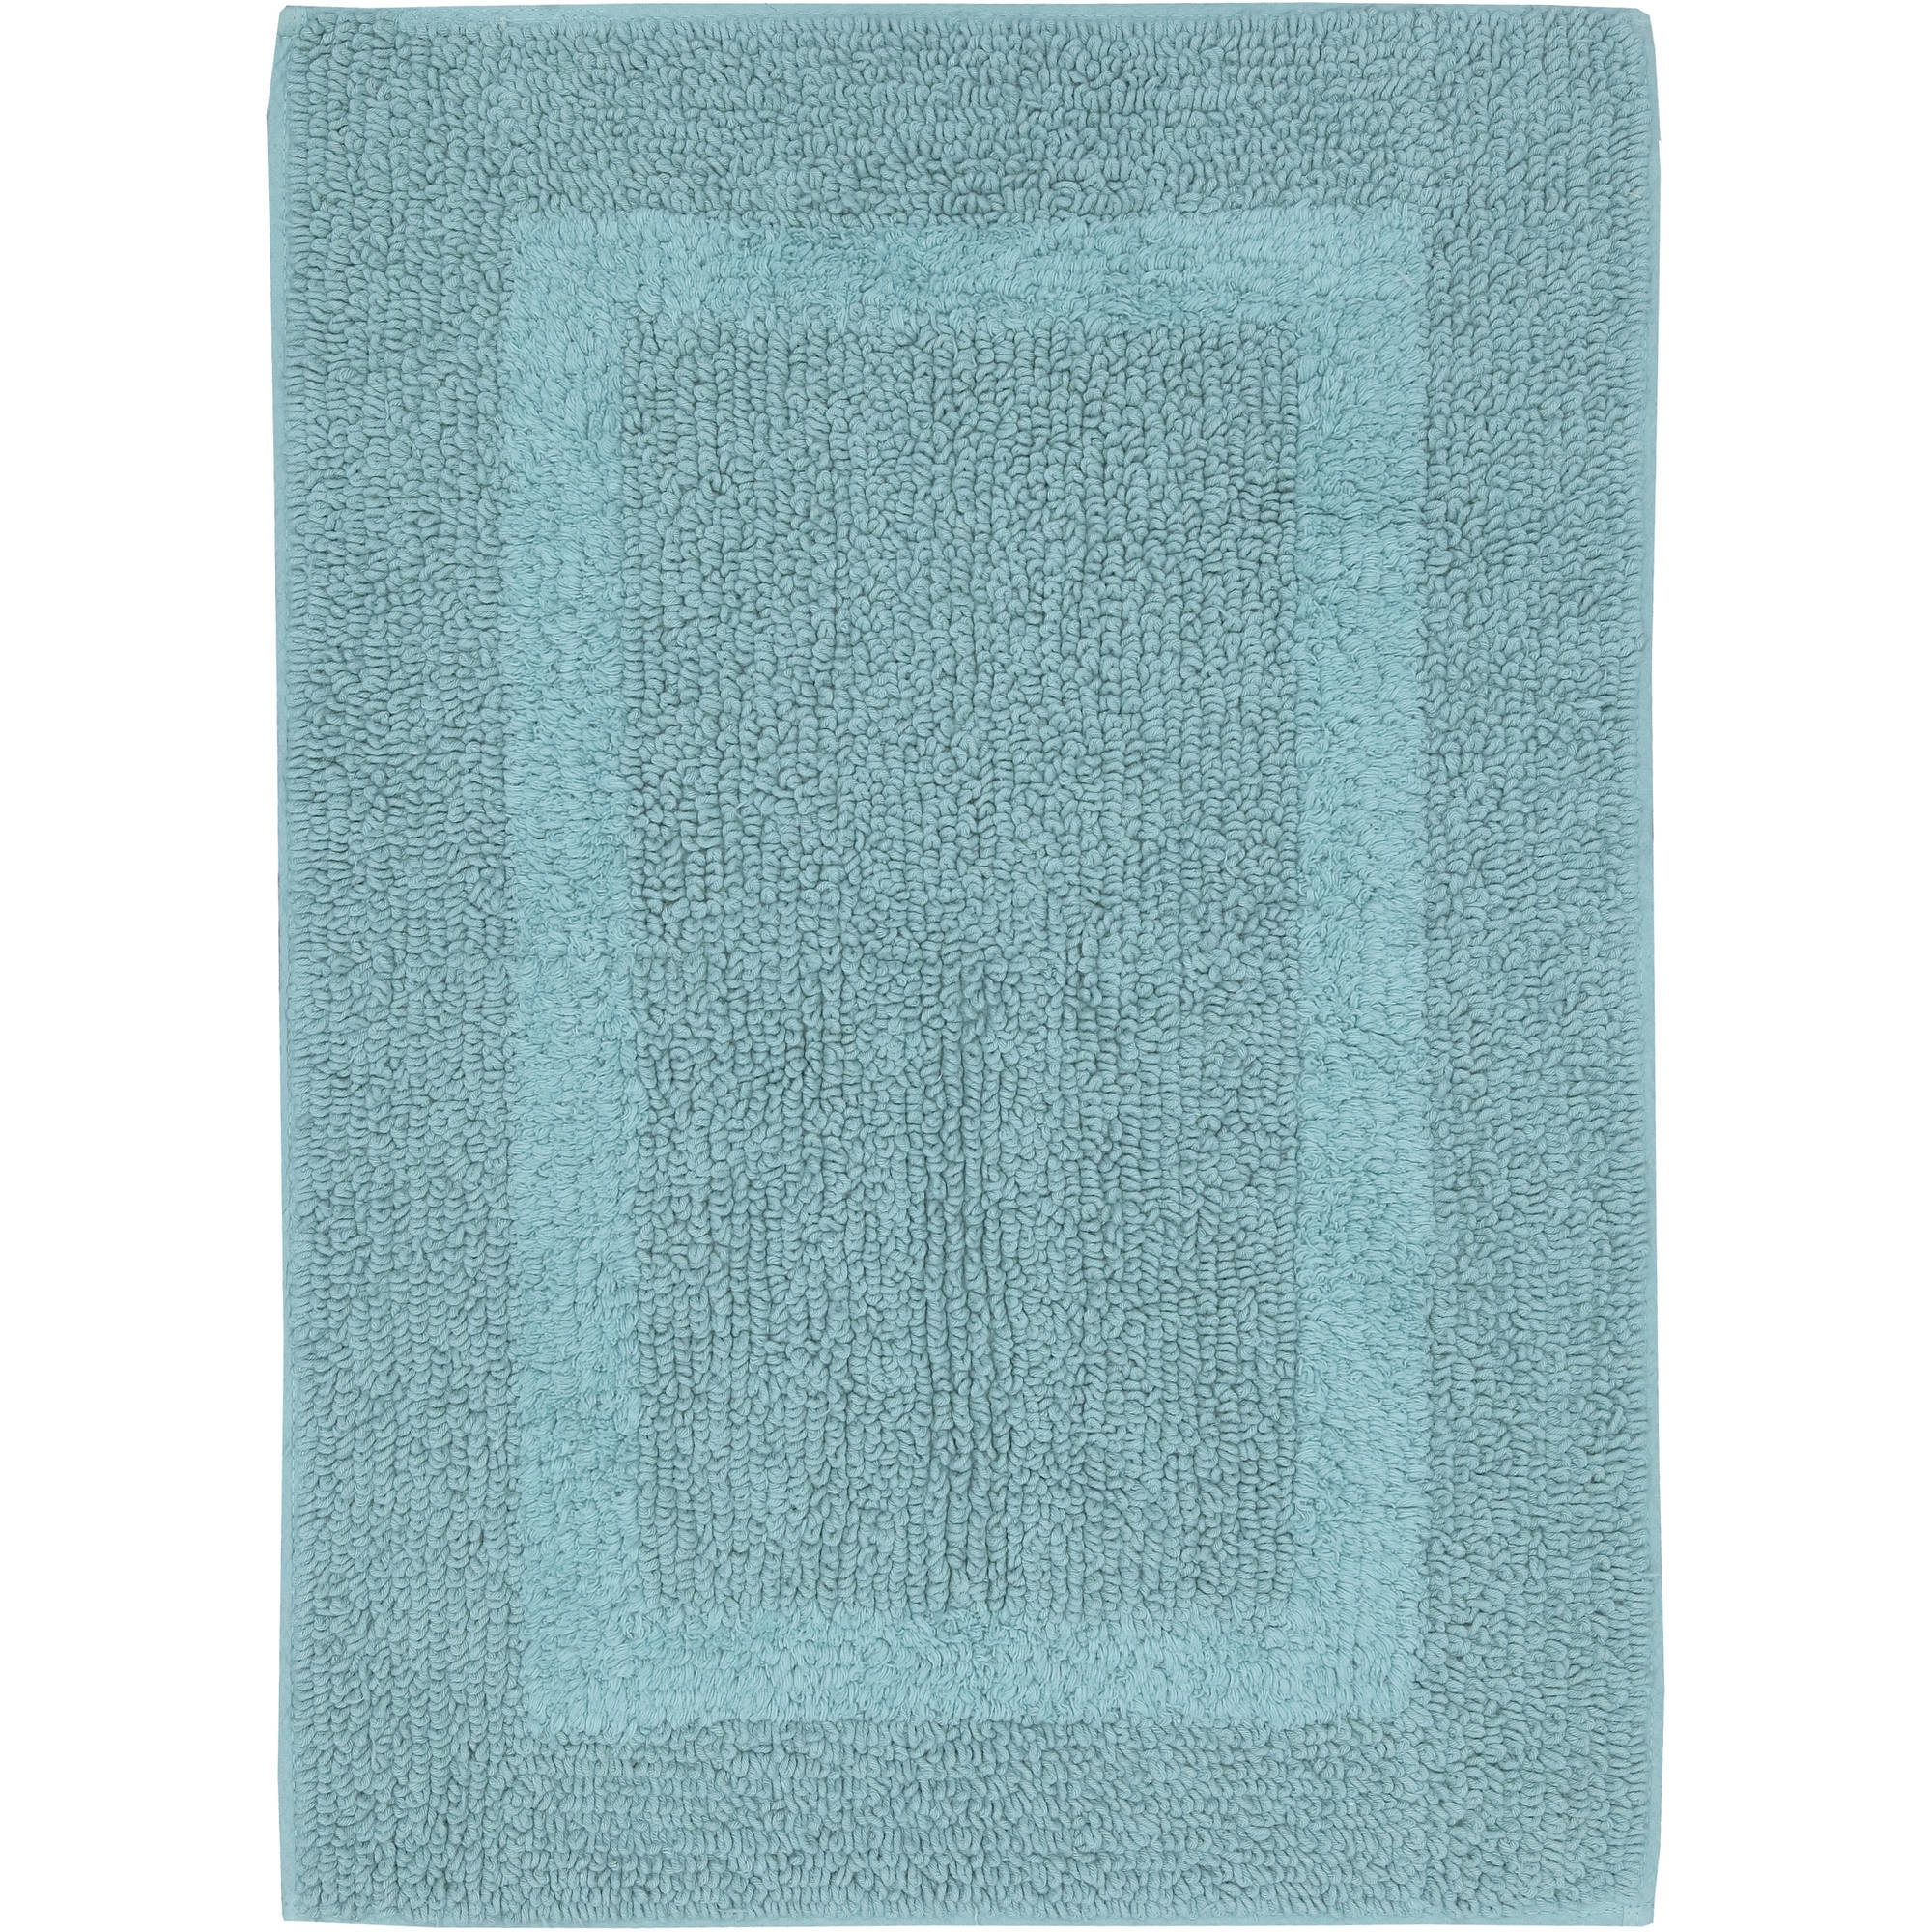 Teal And Coral Bathroom Rugs